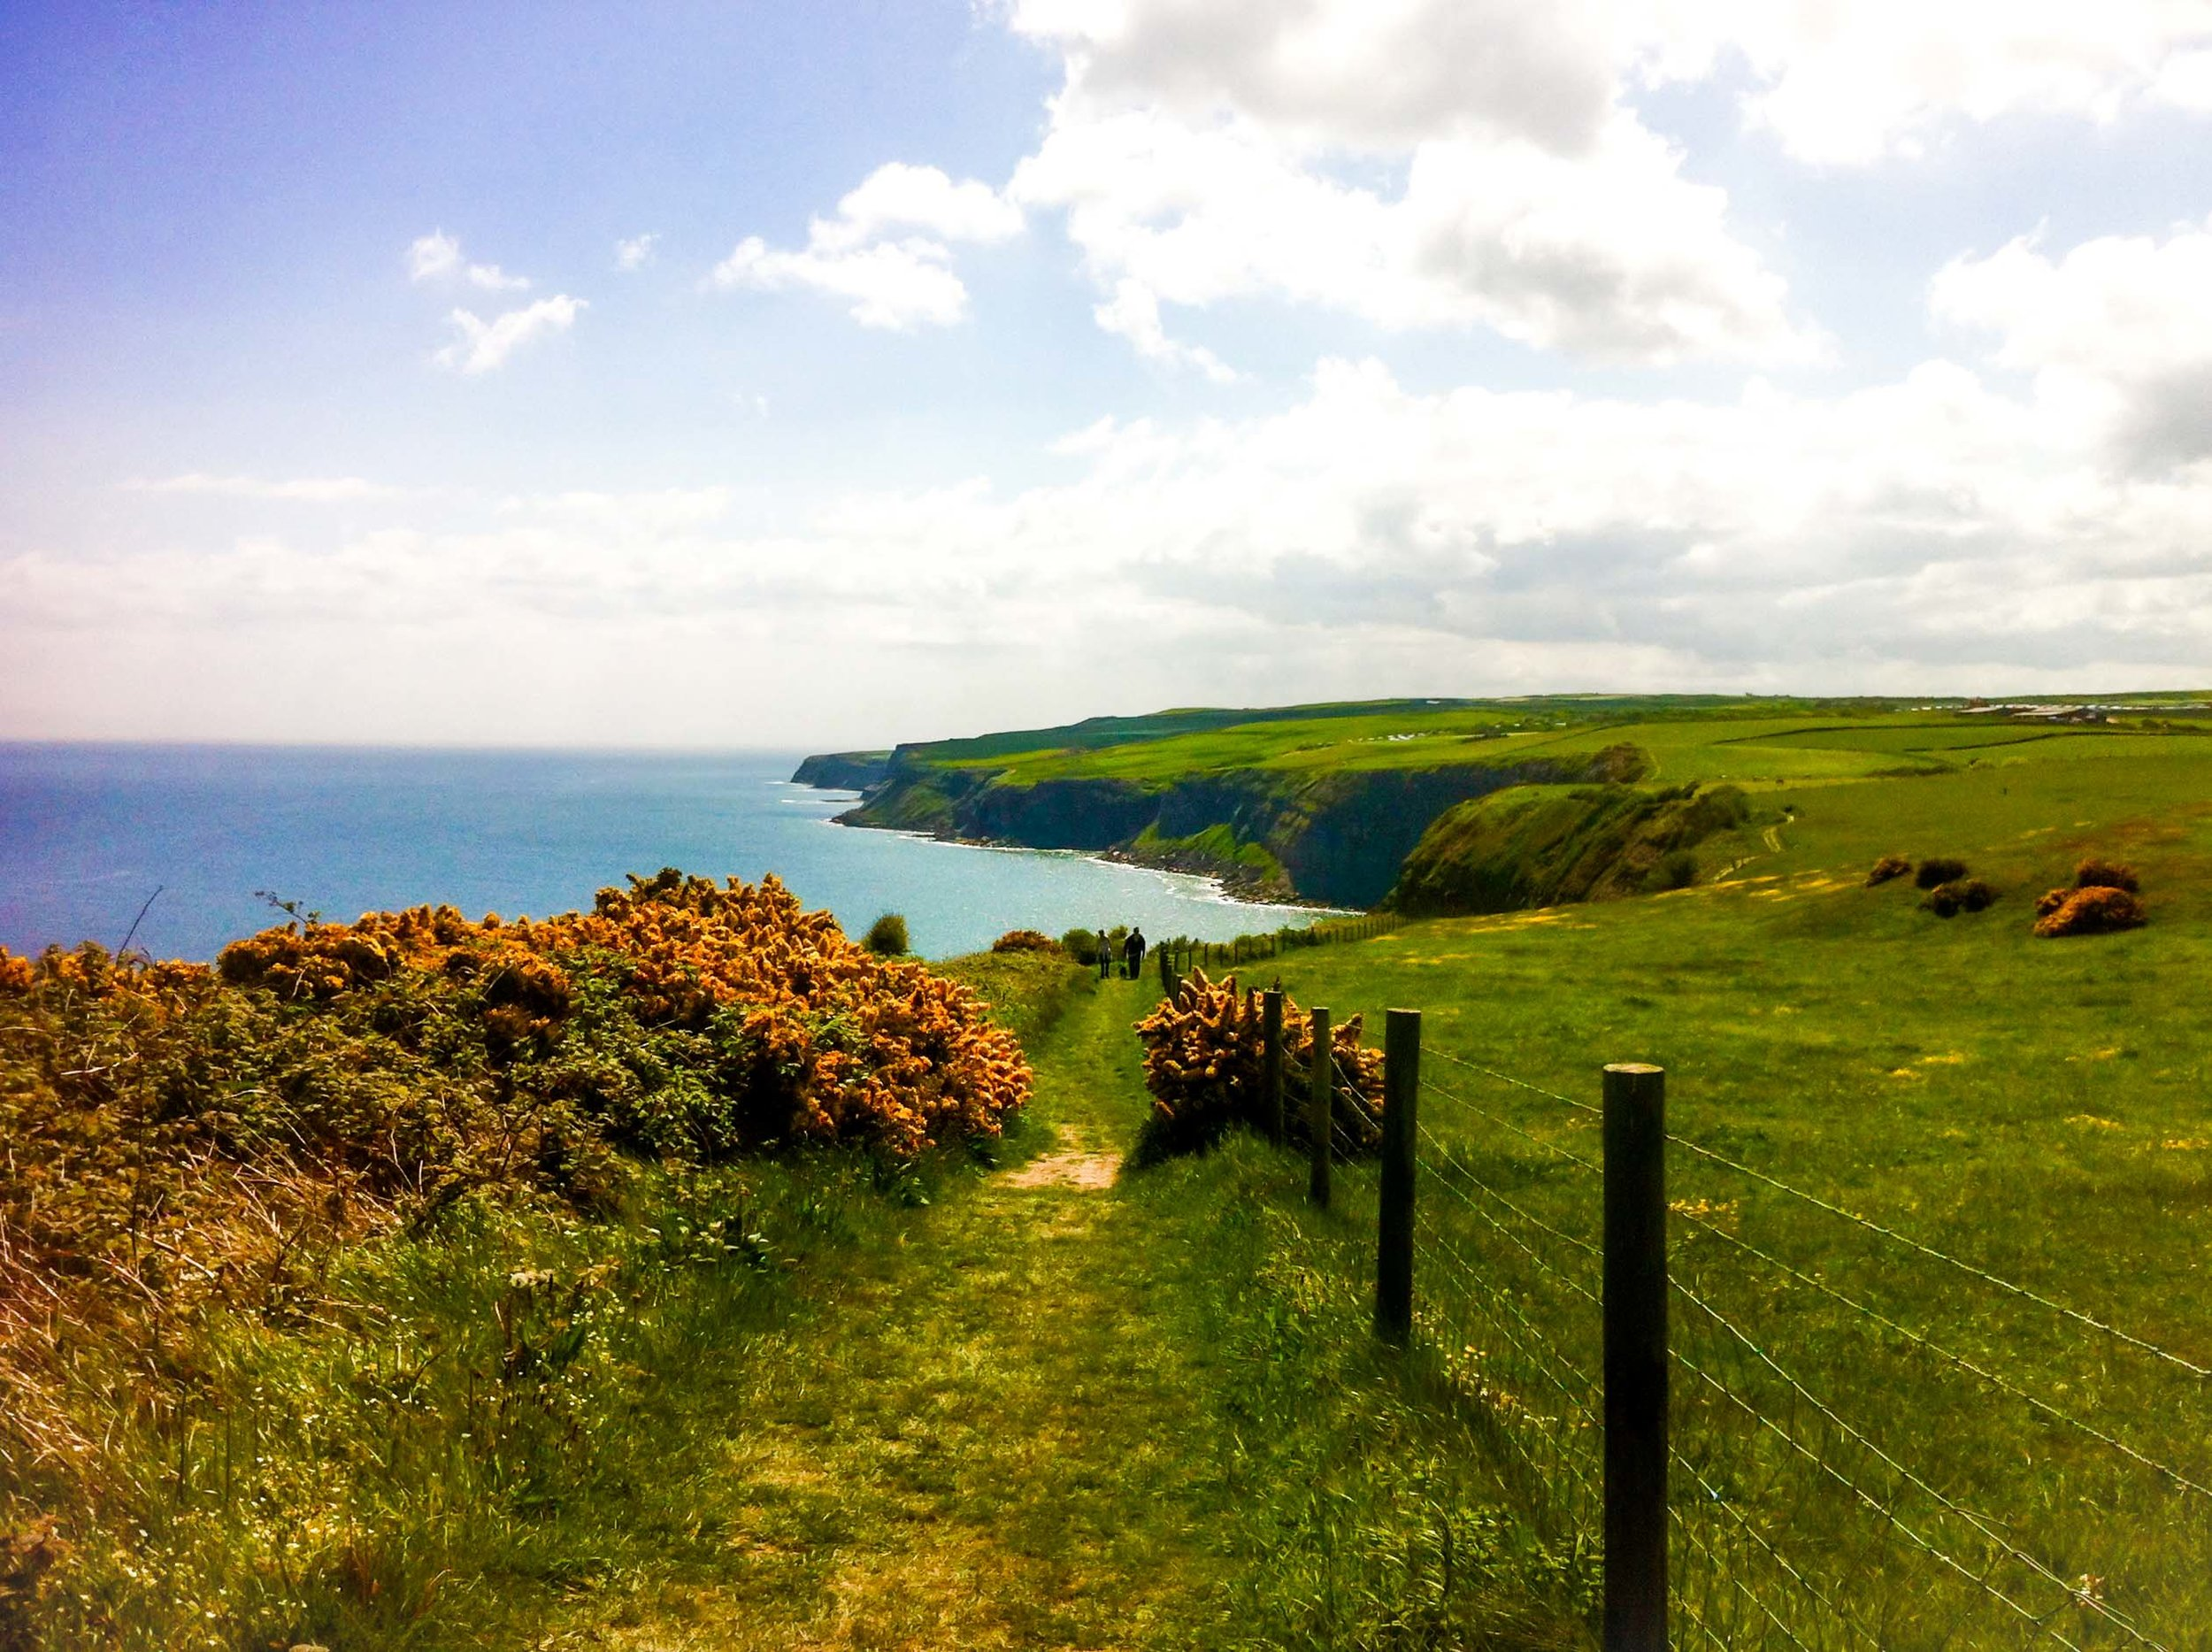 The Cleveland Way coastal walk from Whitby to Robin Hood's Bay, Yorkshire, England.